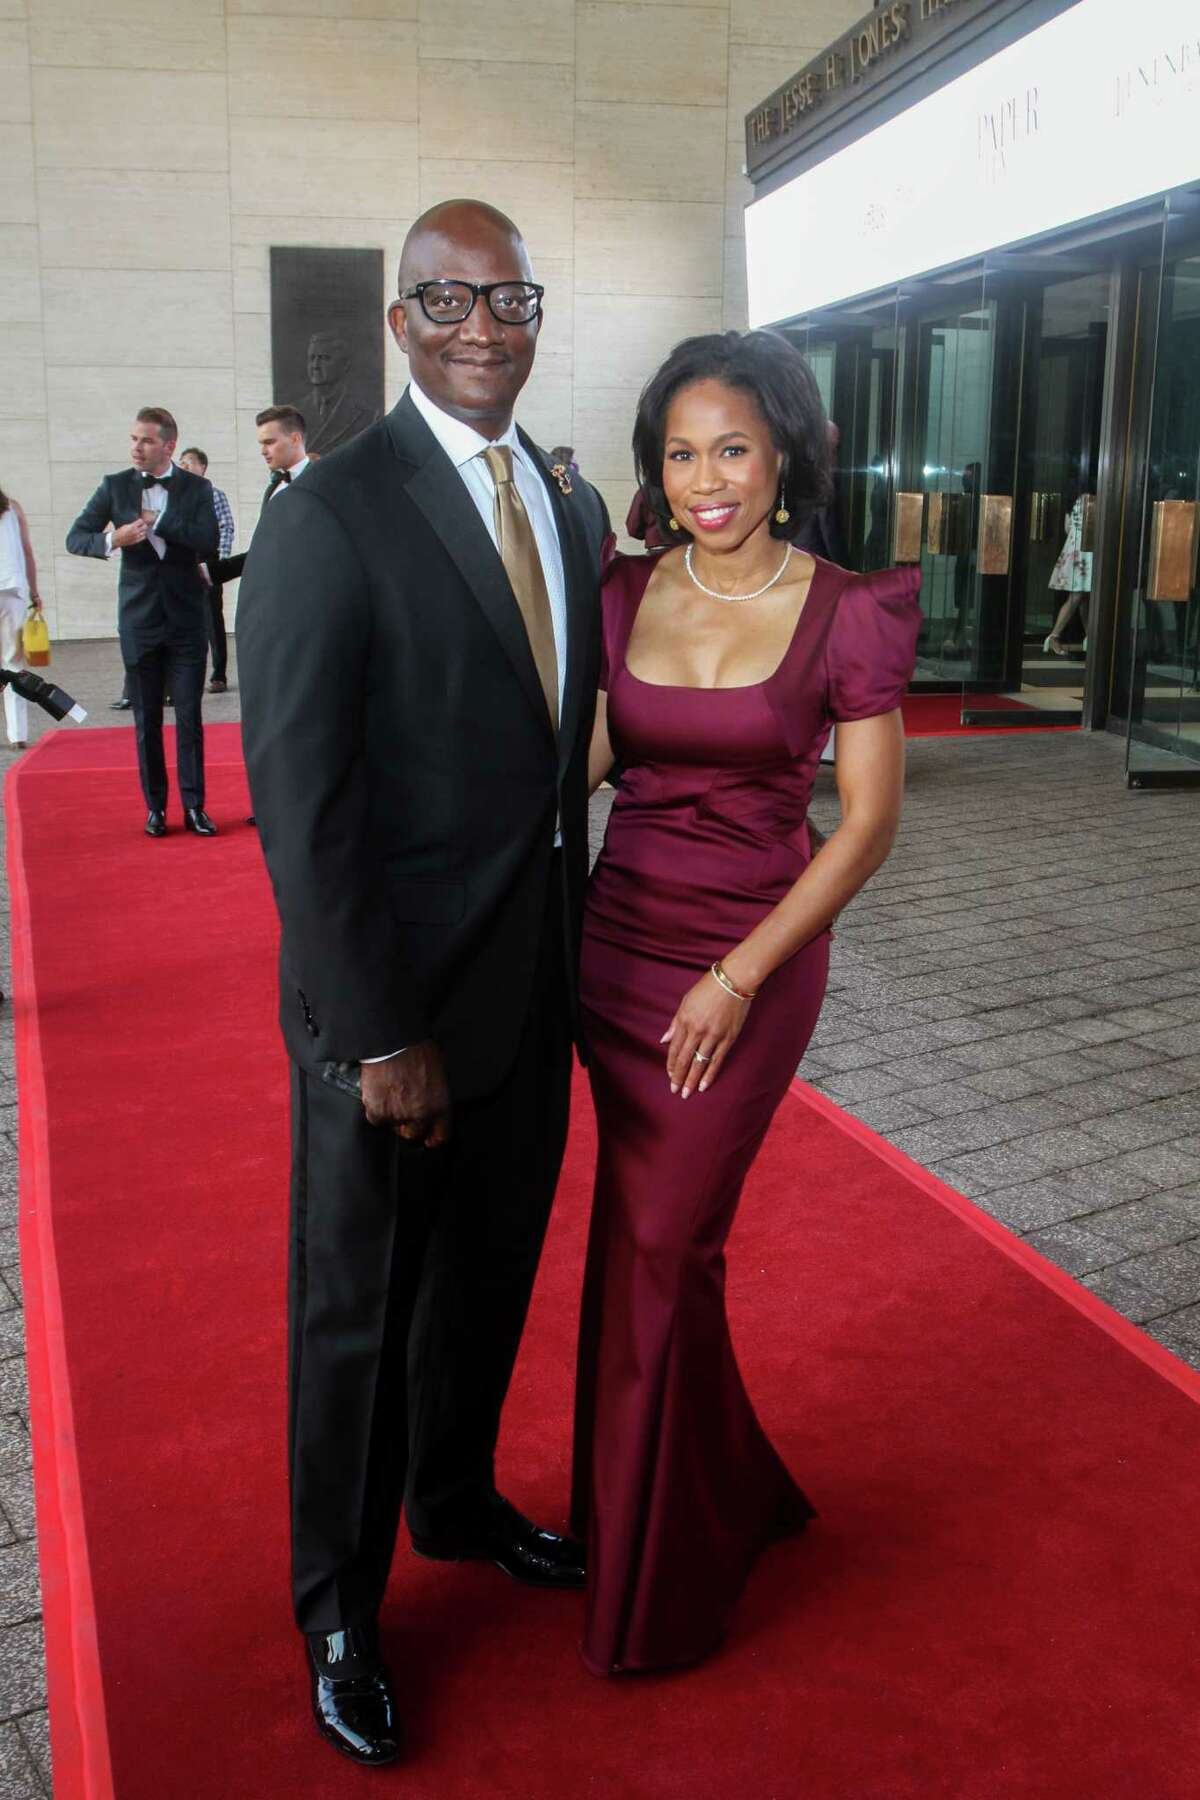 Derrek Mitchell and Roslyn Bazzelle Mitchell at the Houston Symphony Opening Night Concert.